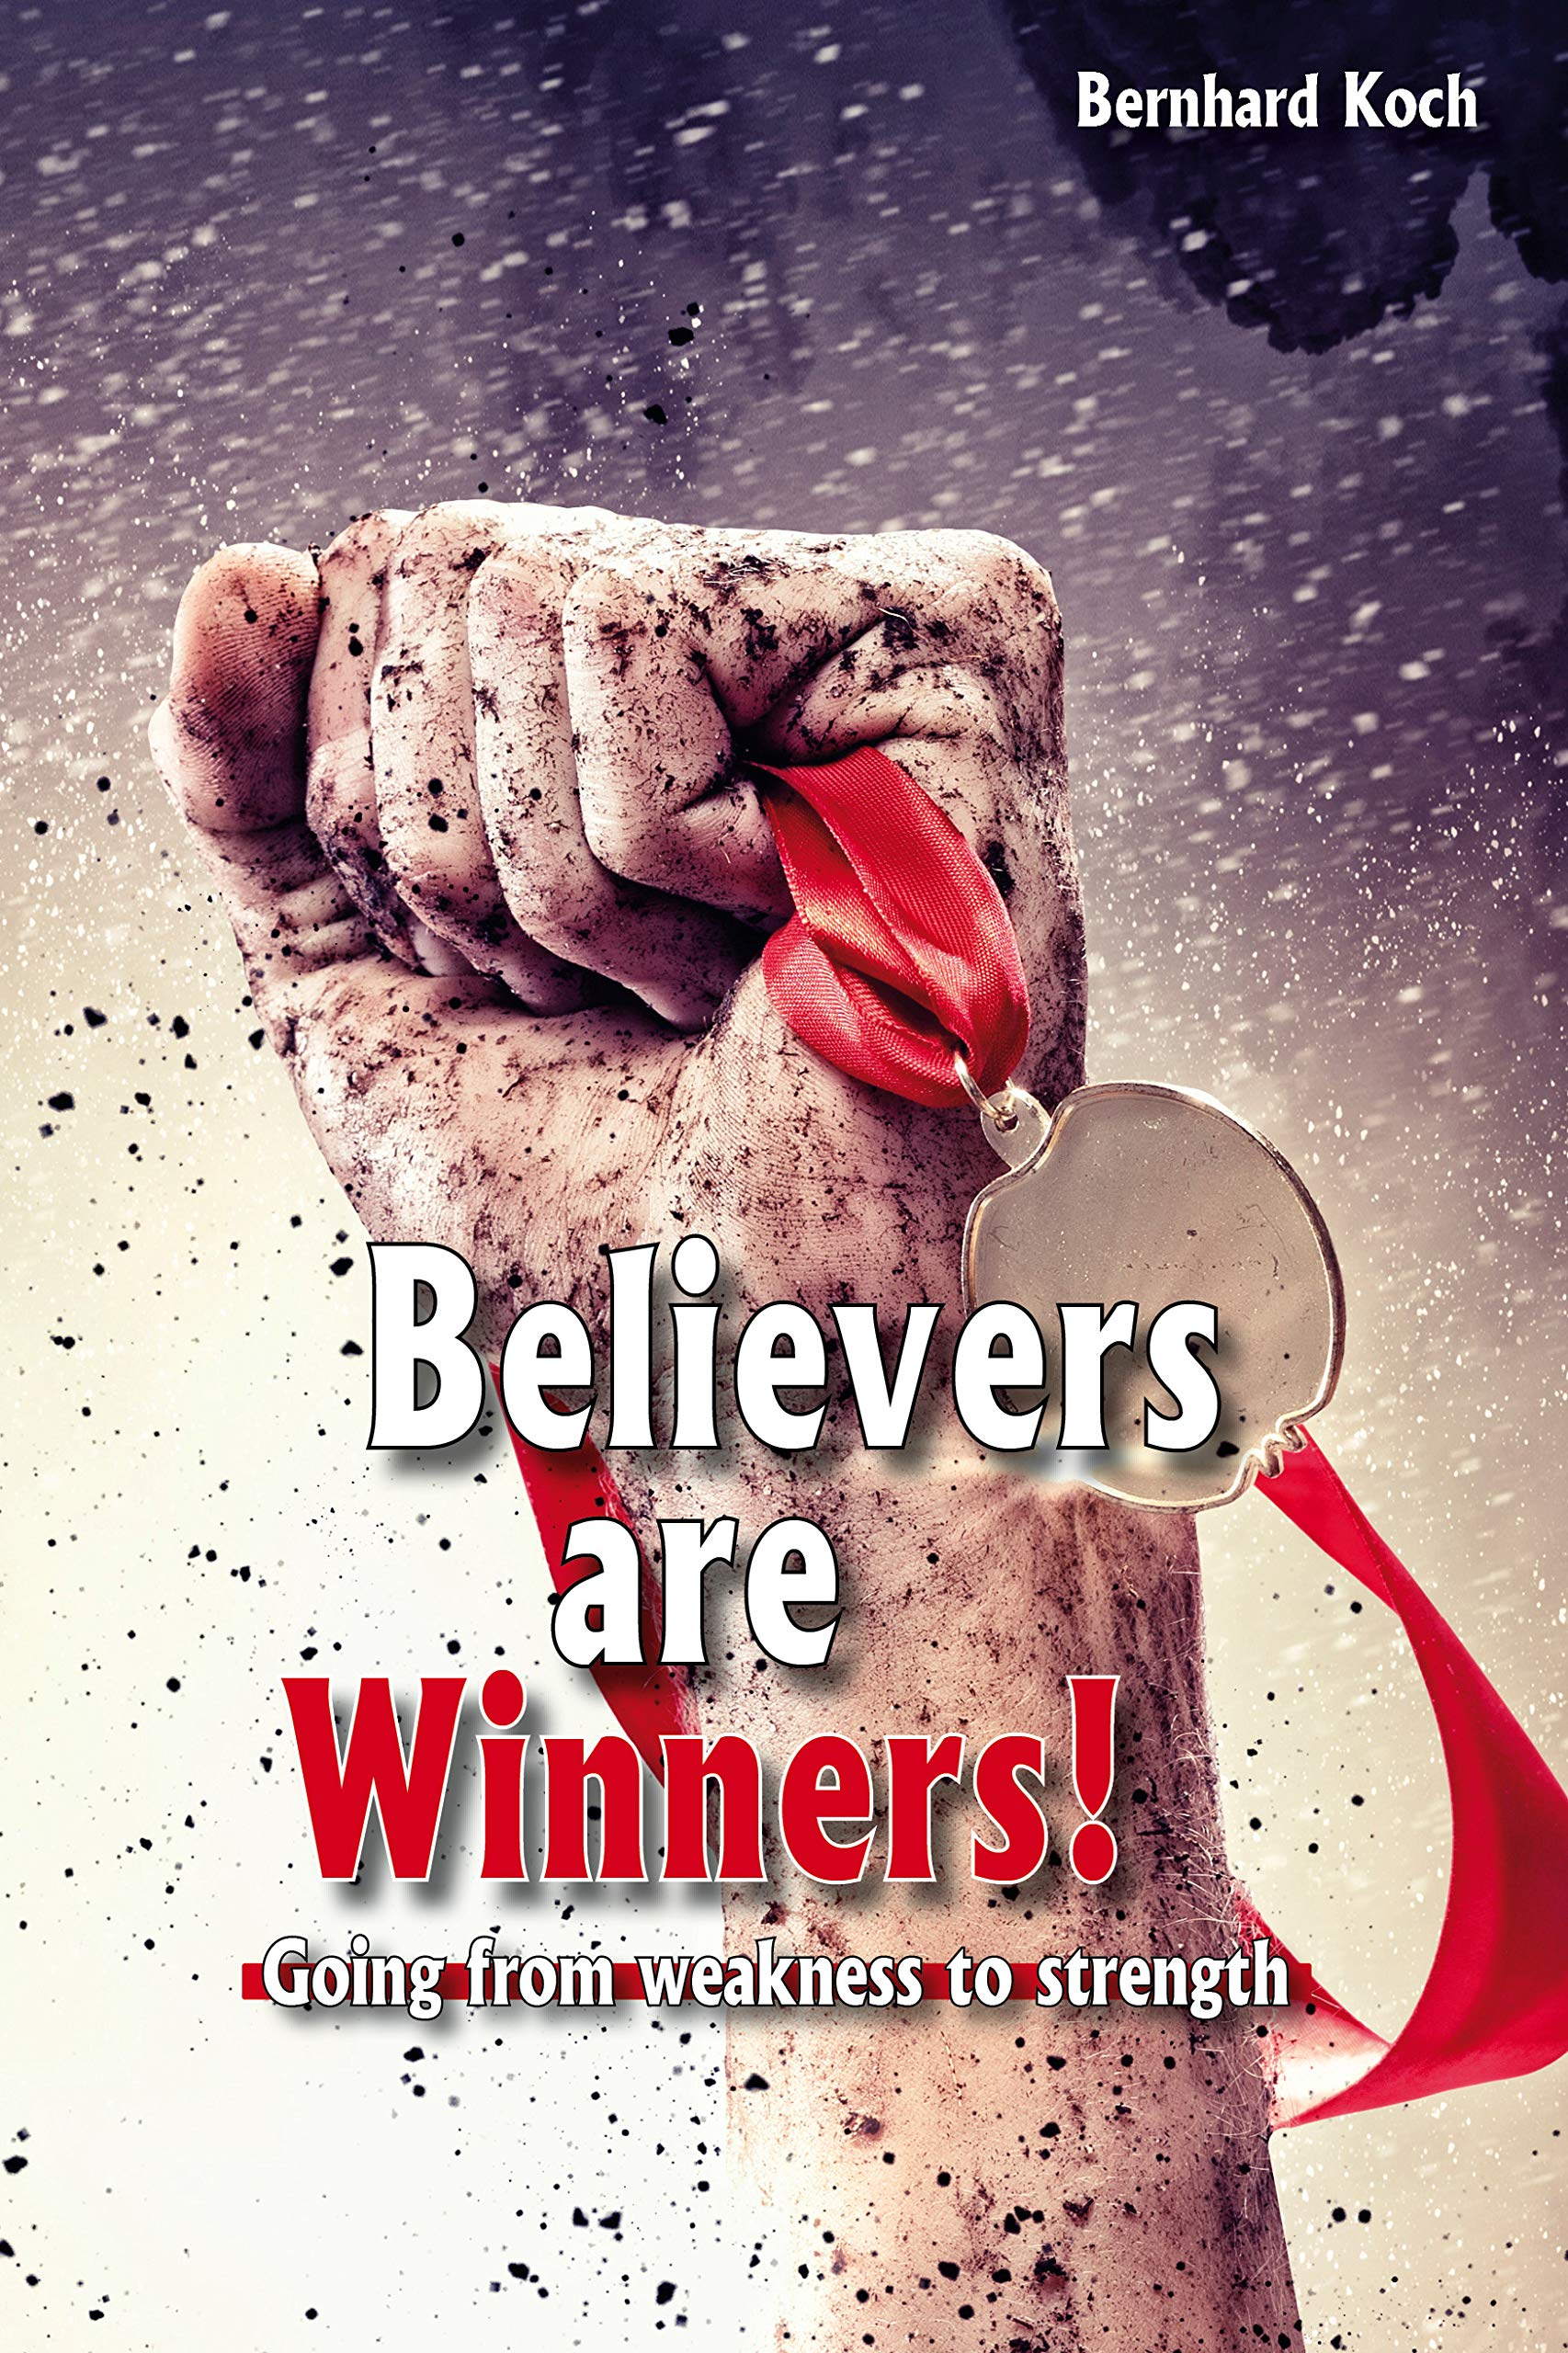 Believers are winners: Going from weakness to strength